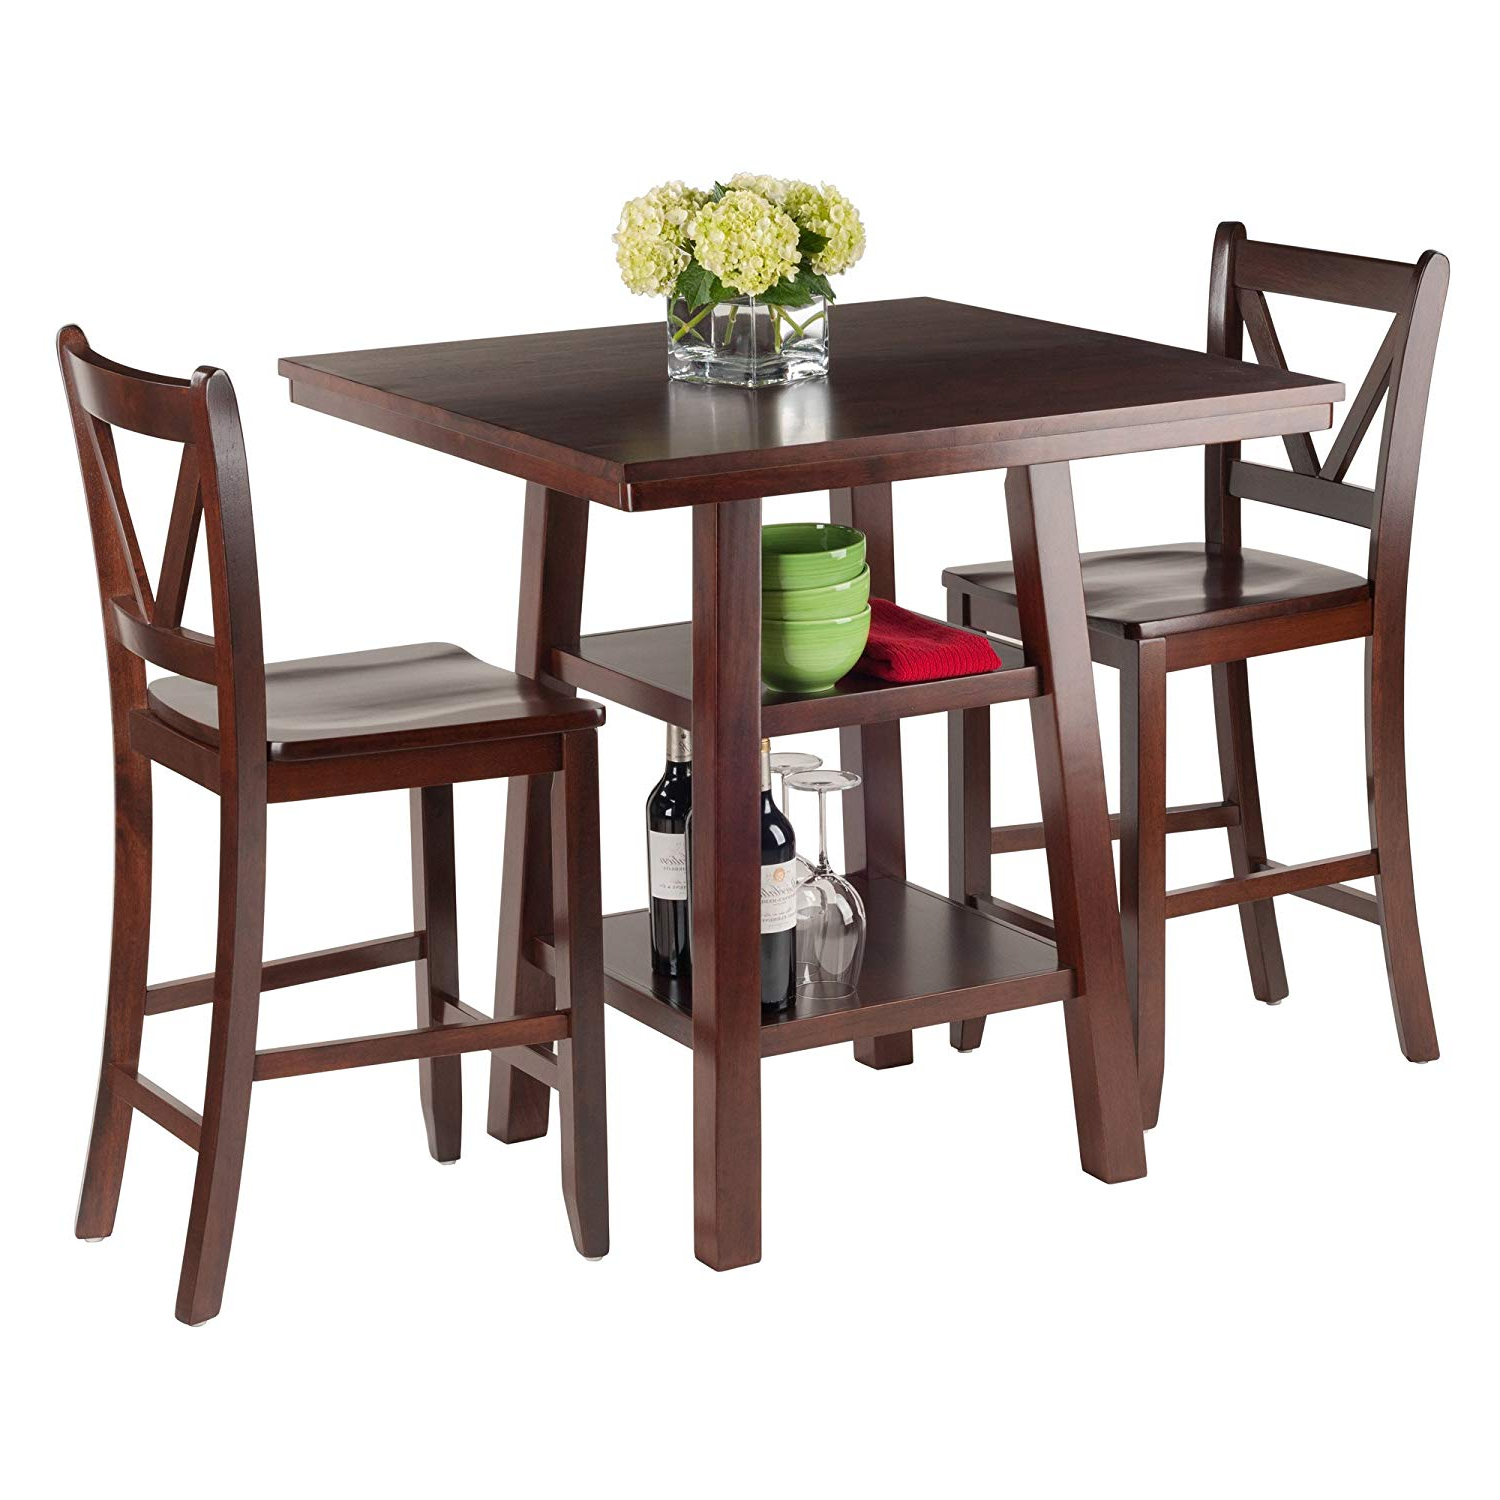 Best And Newest Winsome 3 Piece Counter Height Dining Sets Regarding Amazon: Winsome Wood Orlando 3 Piece Set High Table, 2 Shelves (View 18 of 25)